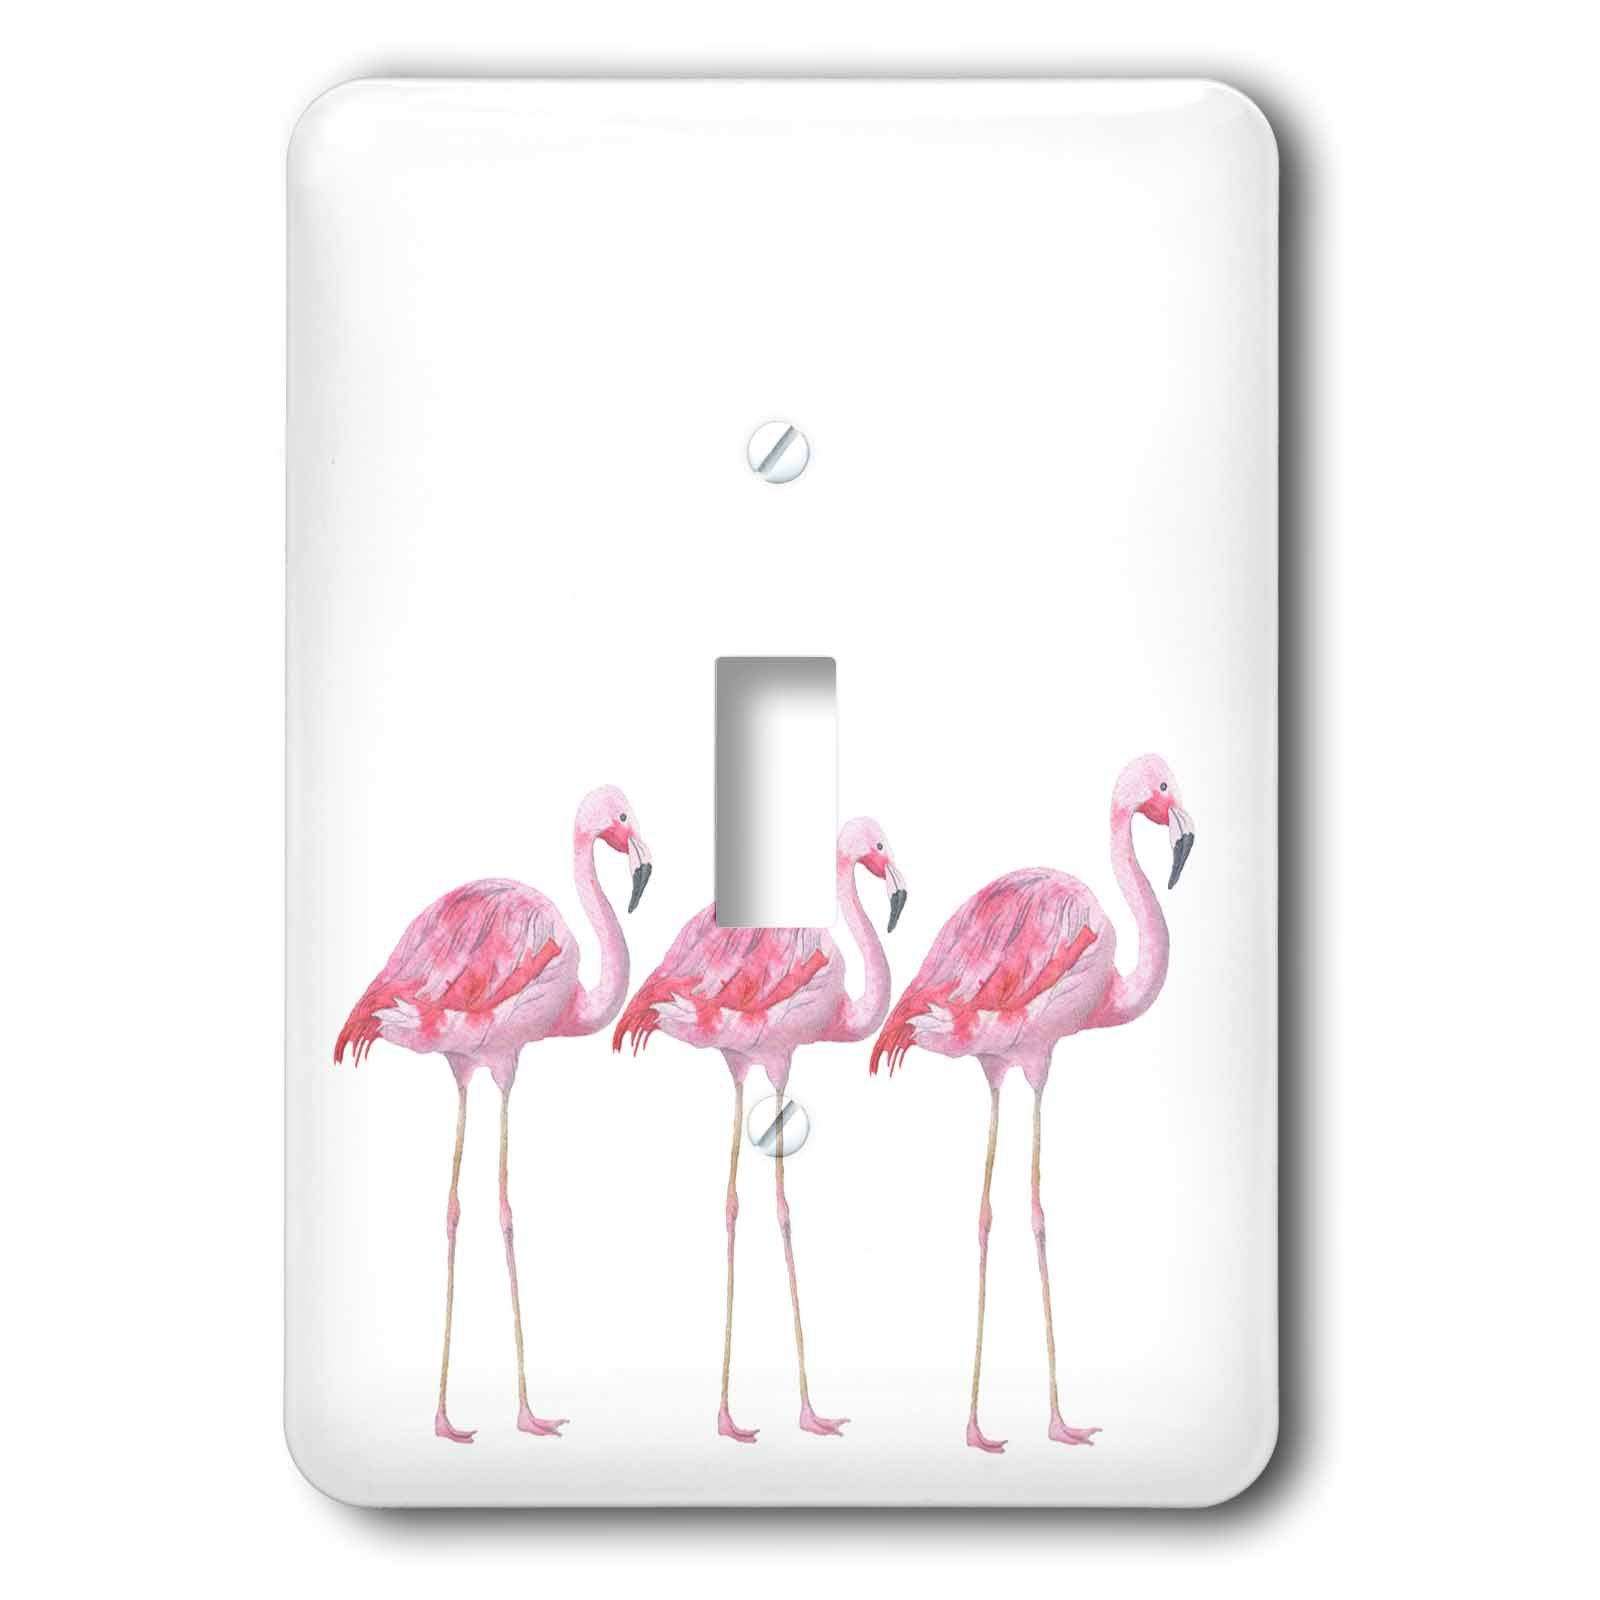 3dRose lsp_252317_1 Flamingos Birds Animals Wild Nature Illustration Single Toggle Switch